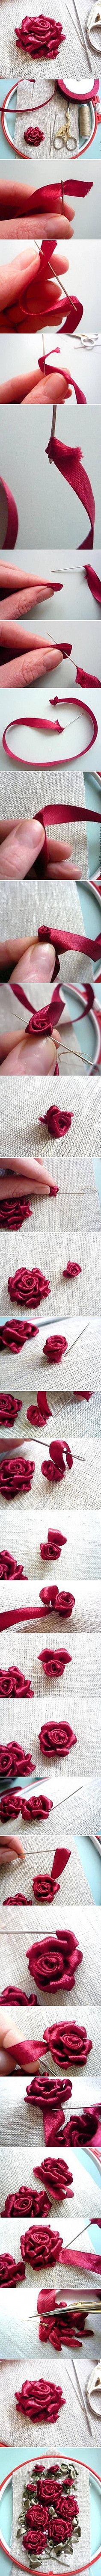 DIY Flowers flowers diy sew crafts home made easy crafts craft idea crafts ideas diy ideas diy crafts diy idea do it yourself diy projects diy craft handmade sewing diy sewing sewing ideas sewing crafts